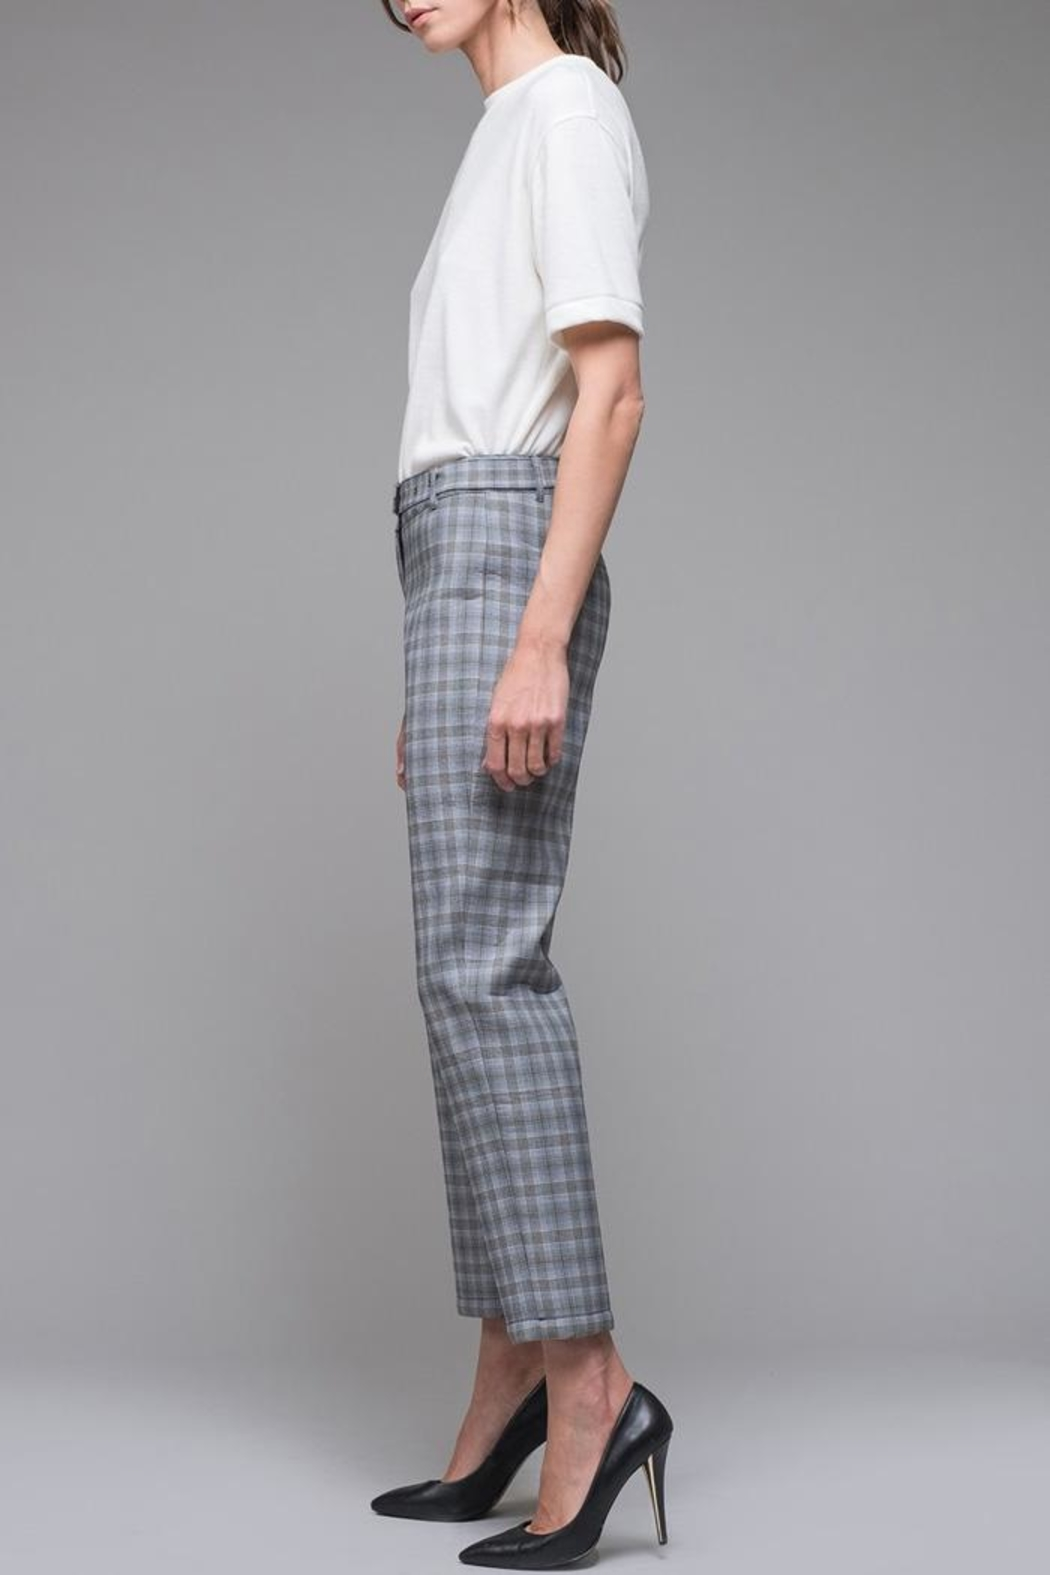 EVIDNT Blue Plaid Pant - Side Cropped Image